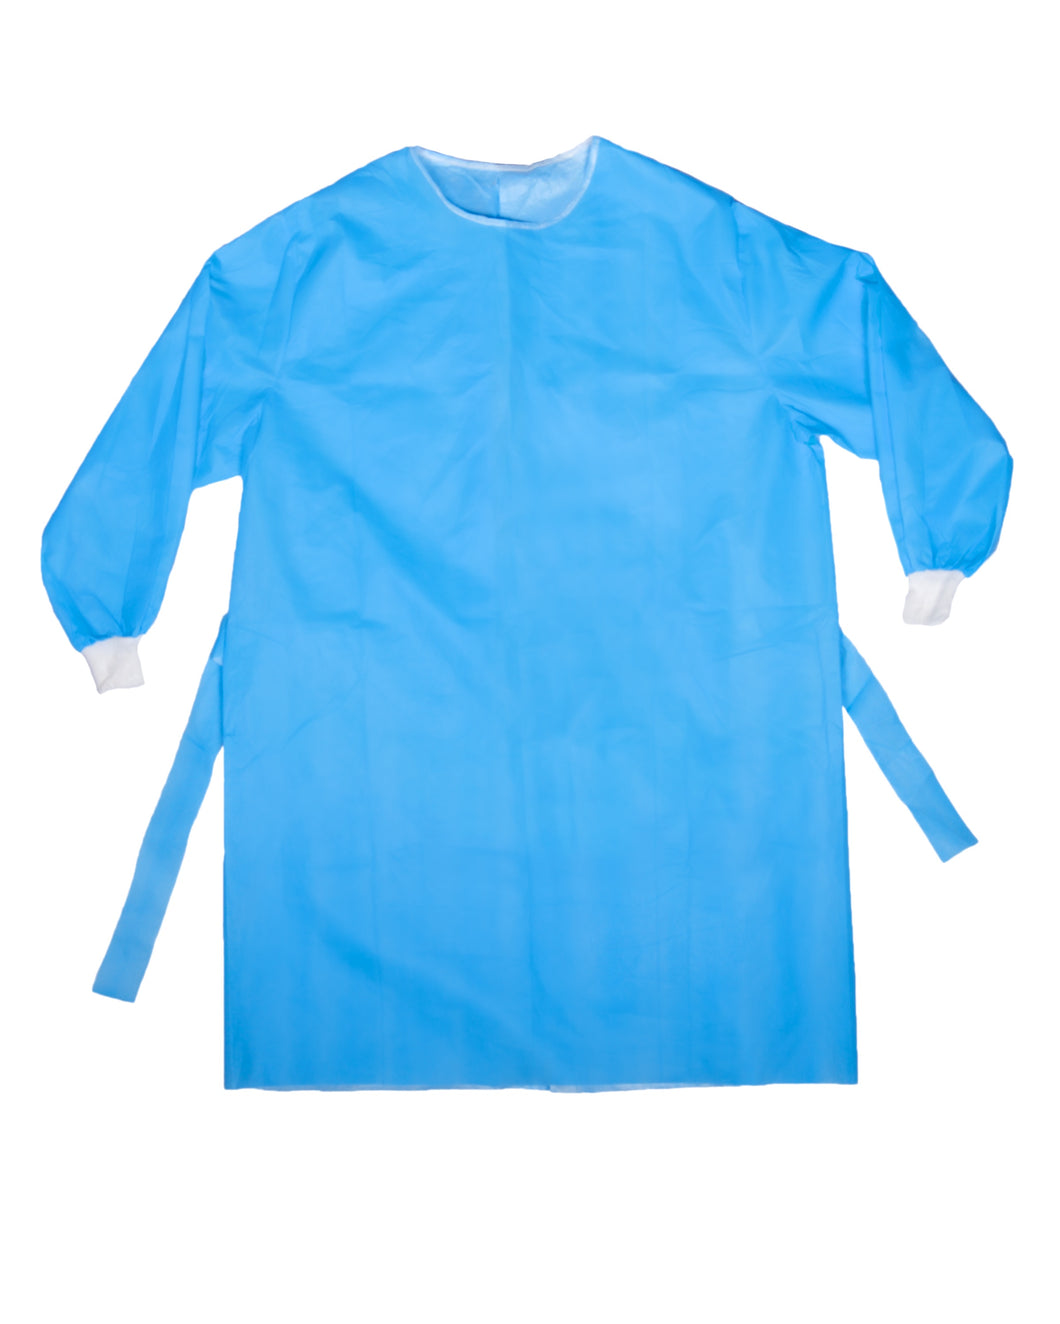 FDA and CE Approved Level II PP Isolation Gowns